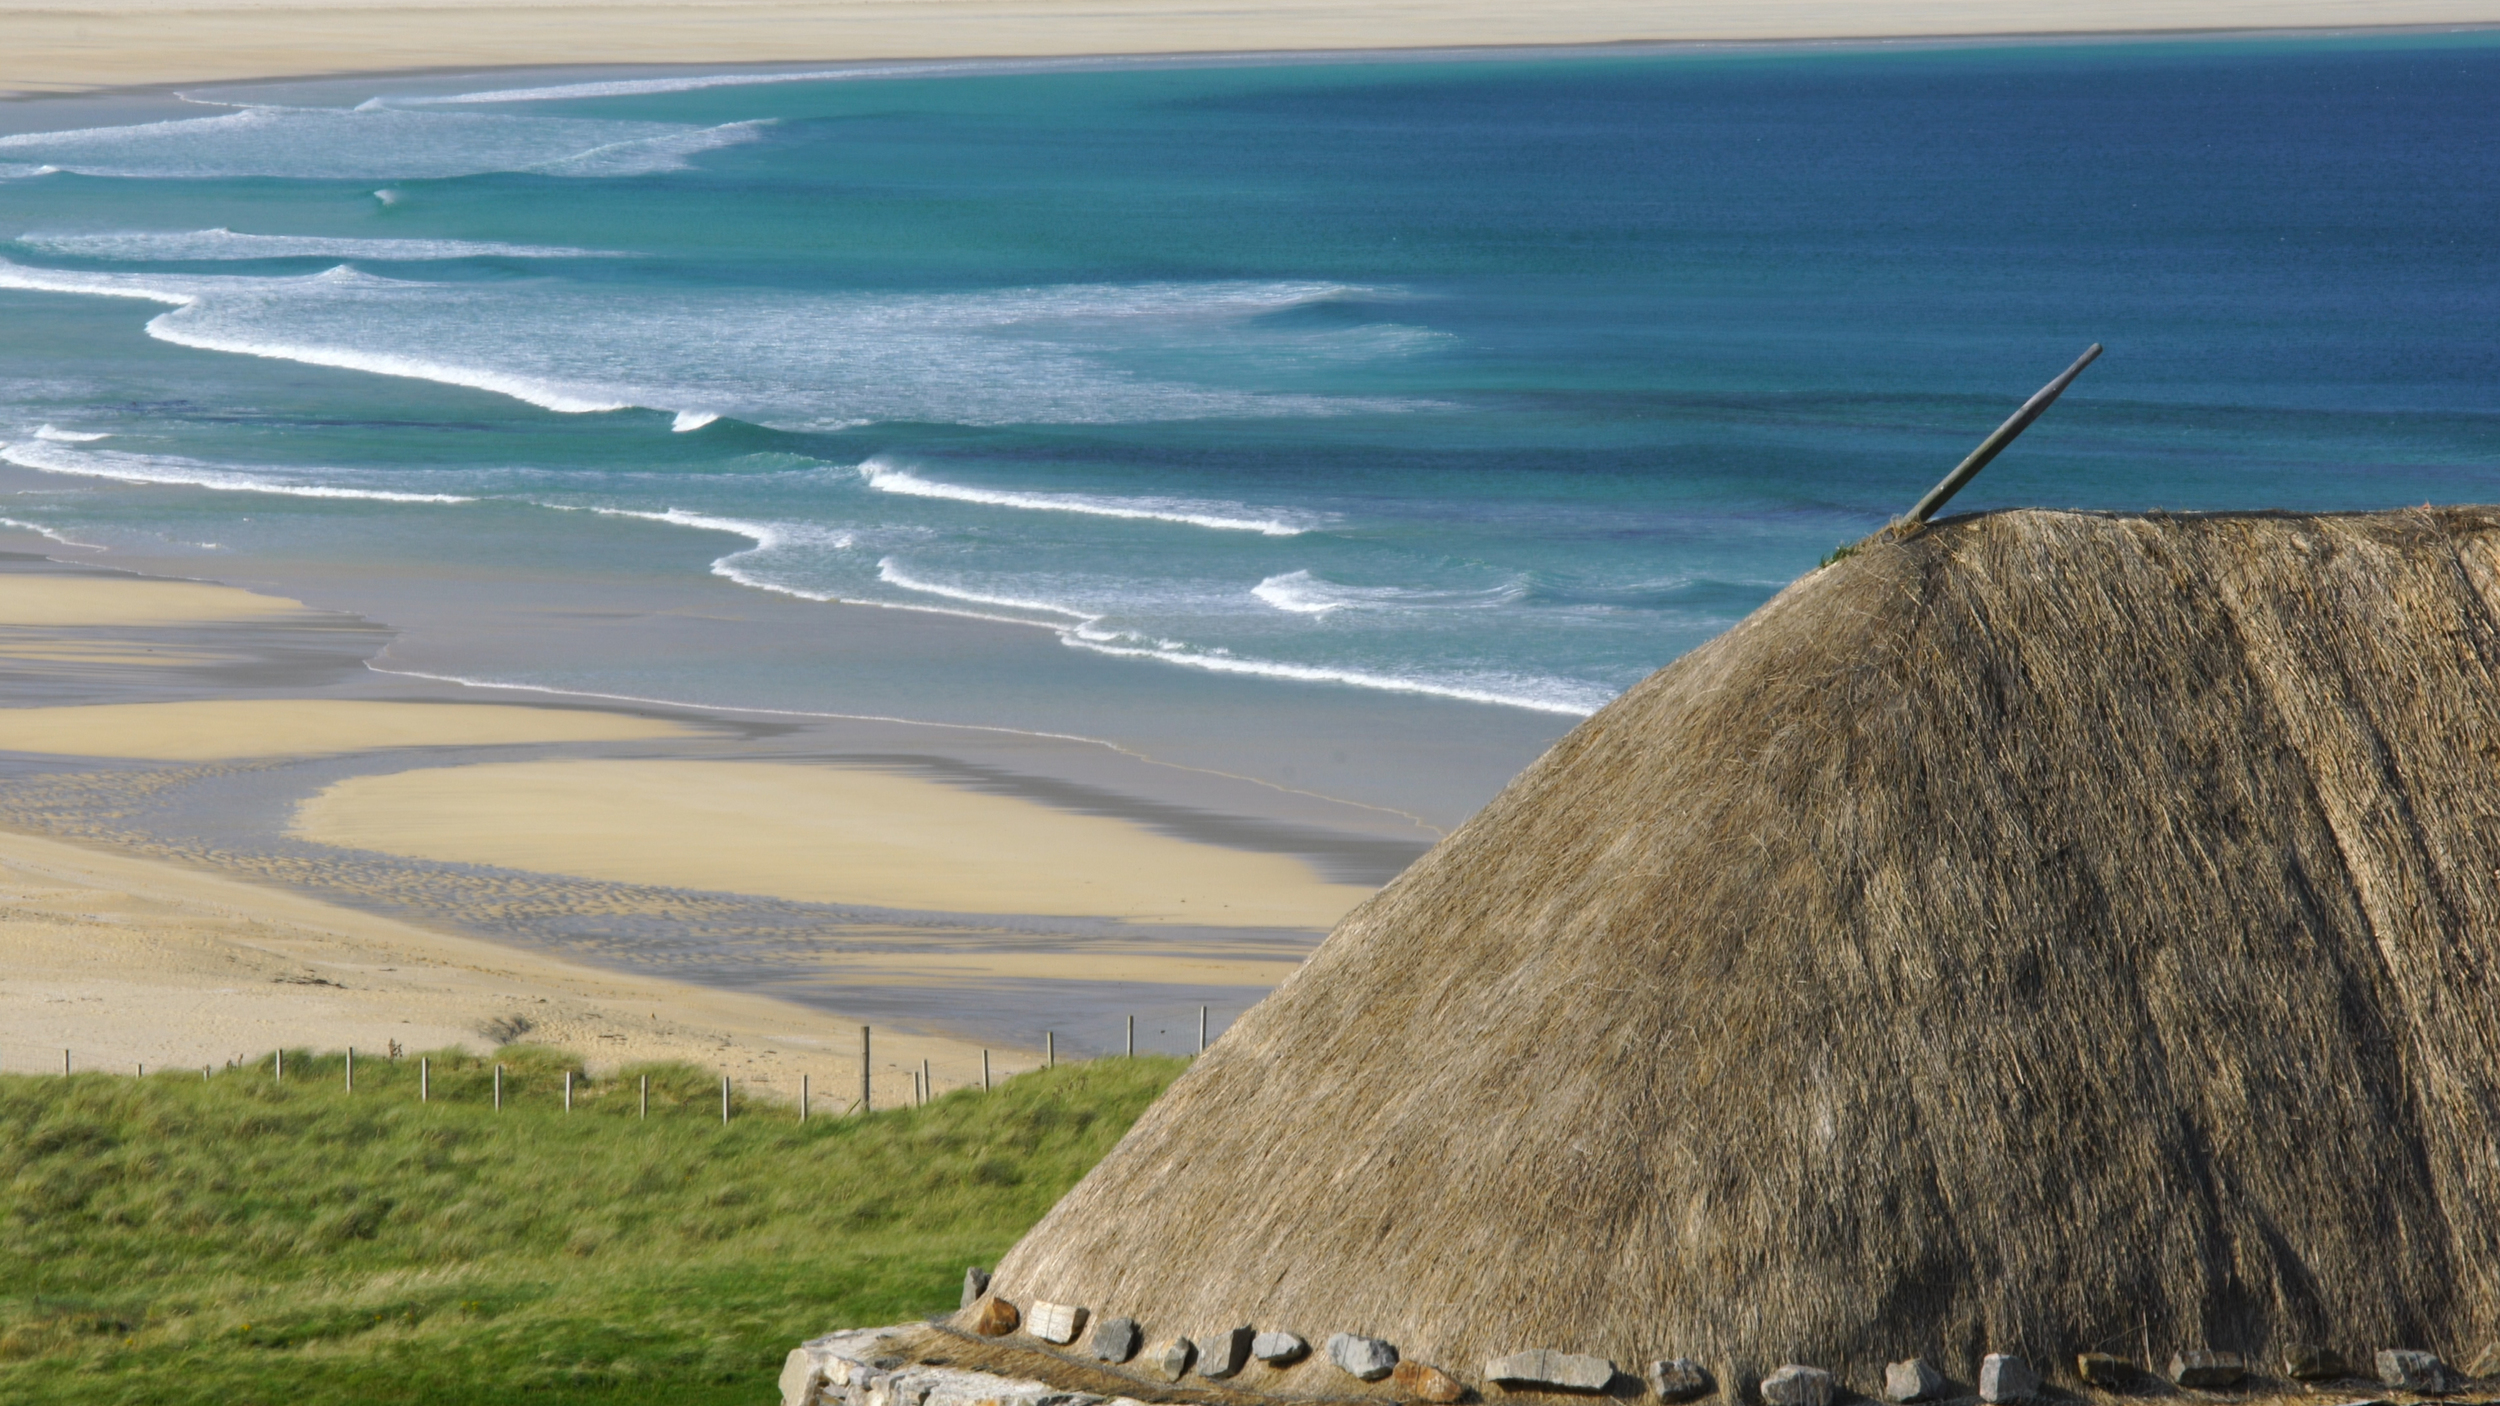 The beautiful marram-thatched roof is based on techniques over 1,500 years old, using turf and weighting stones as well as copious supplies of the local marram seagrass. Thatching was carried out by Neil Nicholson, an expert in his craft, from the neighbouring island of North Uist.